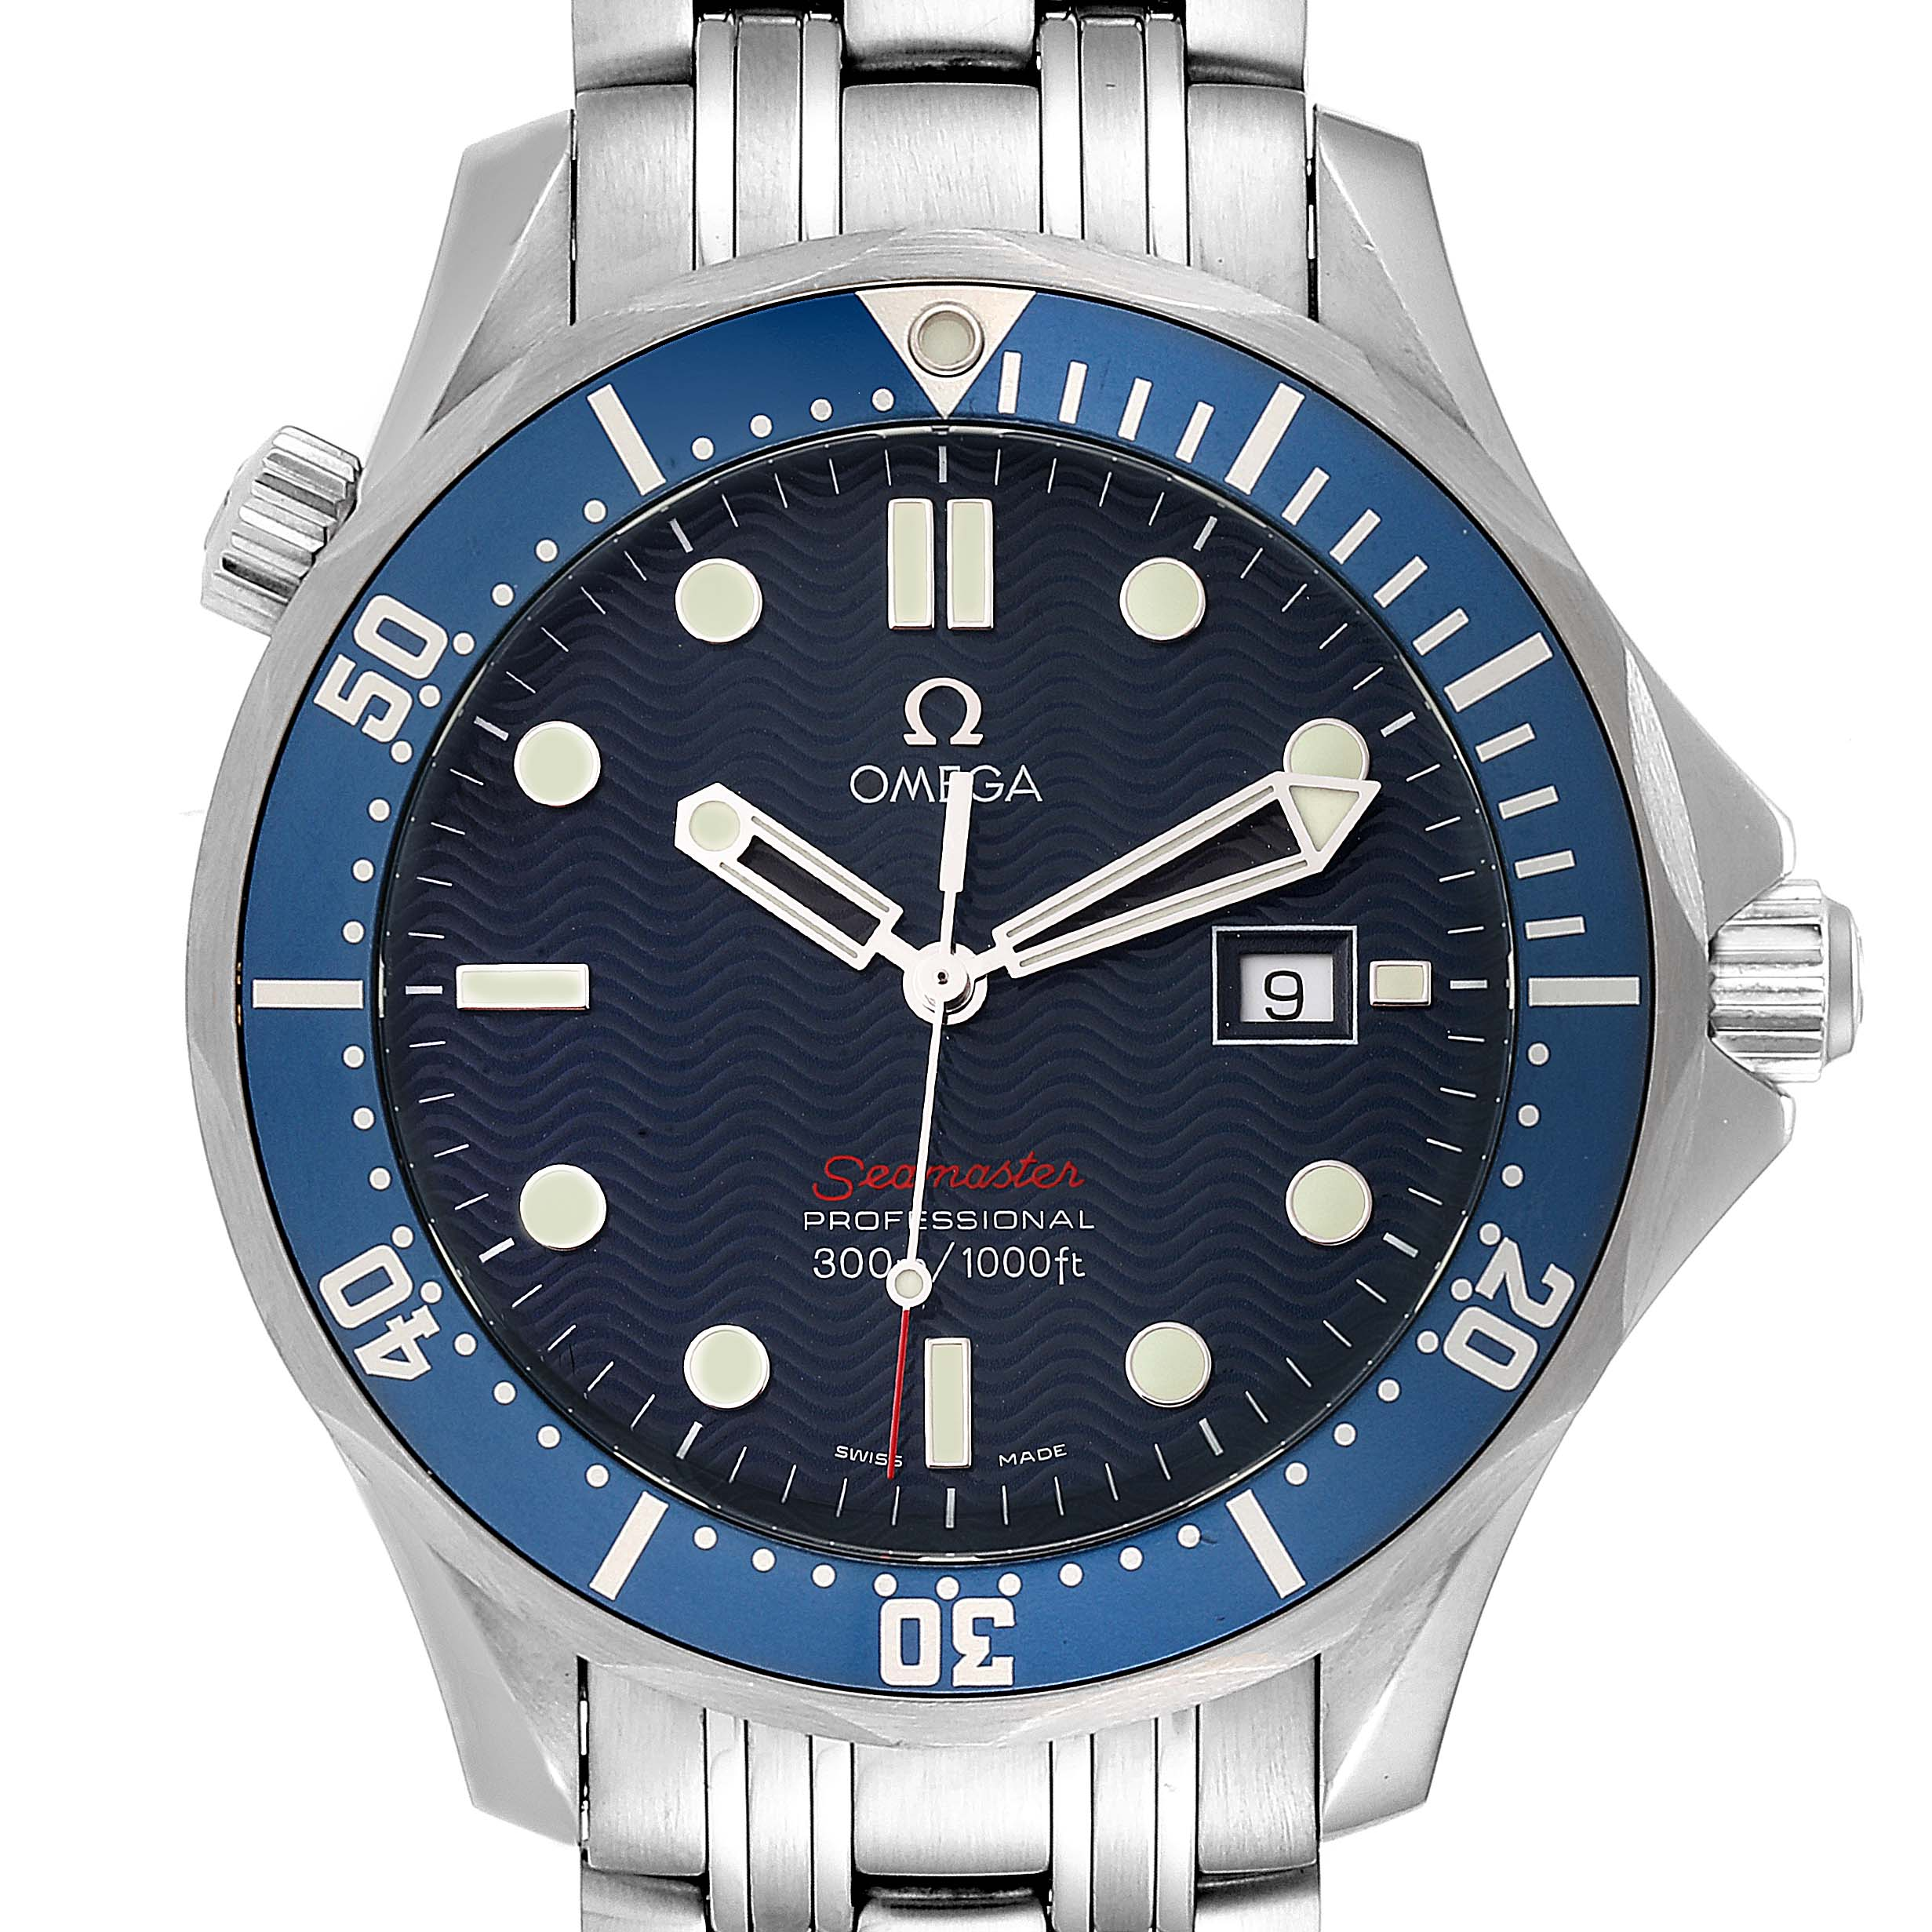 Omega Seamaster Bond 300M Blue Wave Dial Mens Watch 2221.80.00 Box Card